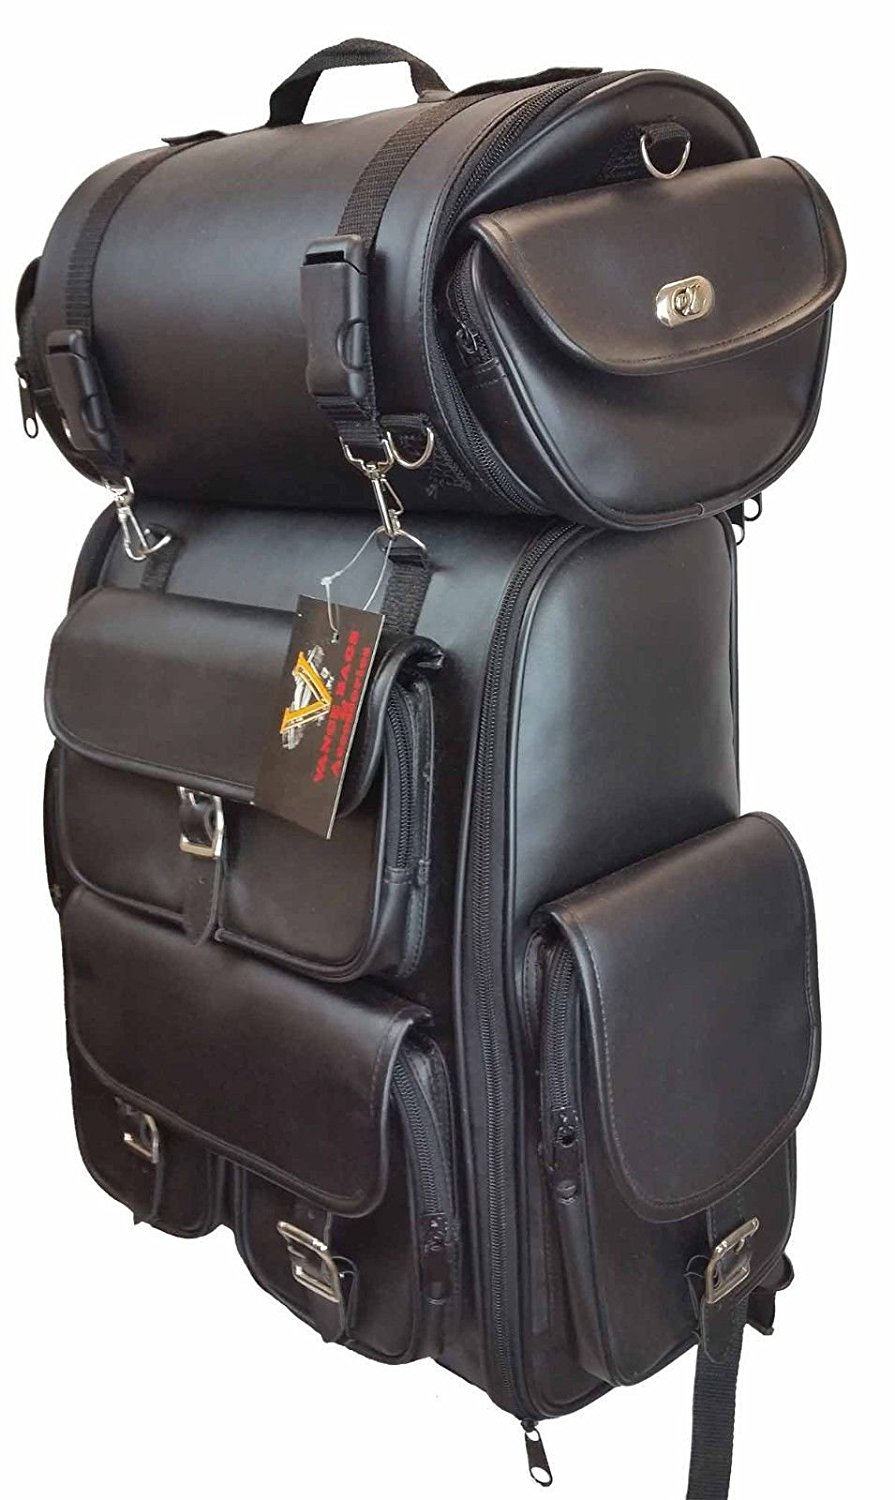 Get Quotations Motorcycle Large Sissy Bar Travel Bag Back Pack Luggage New Black